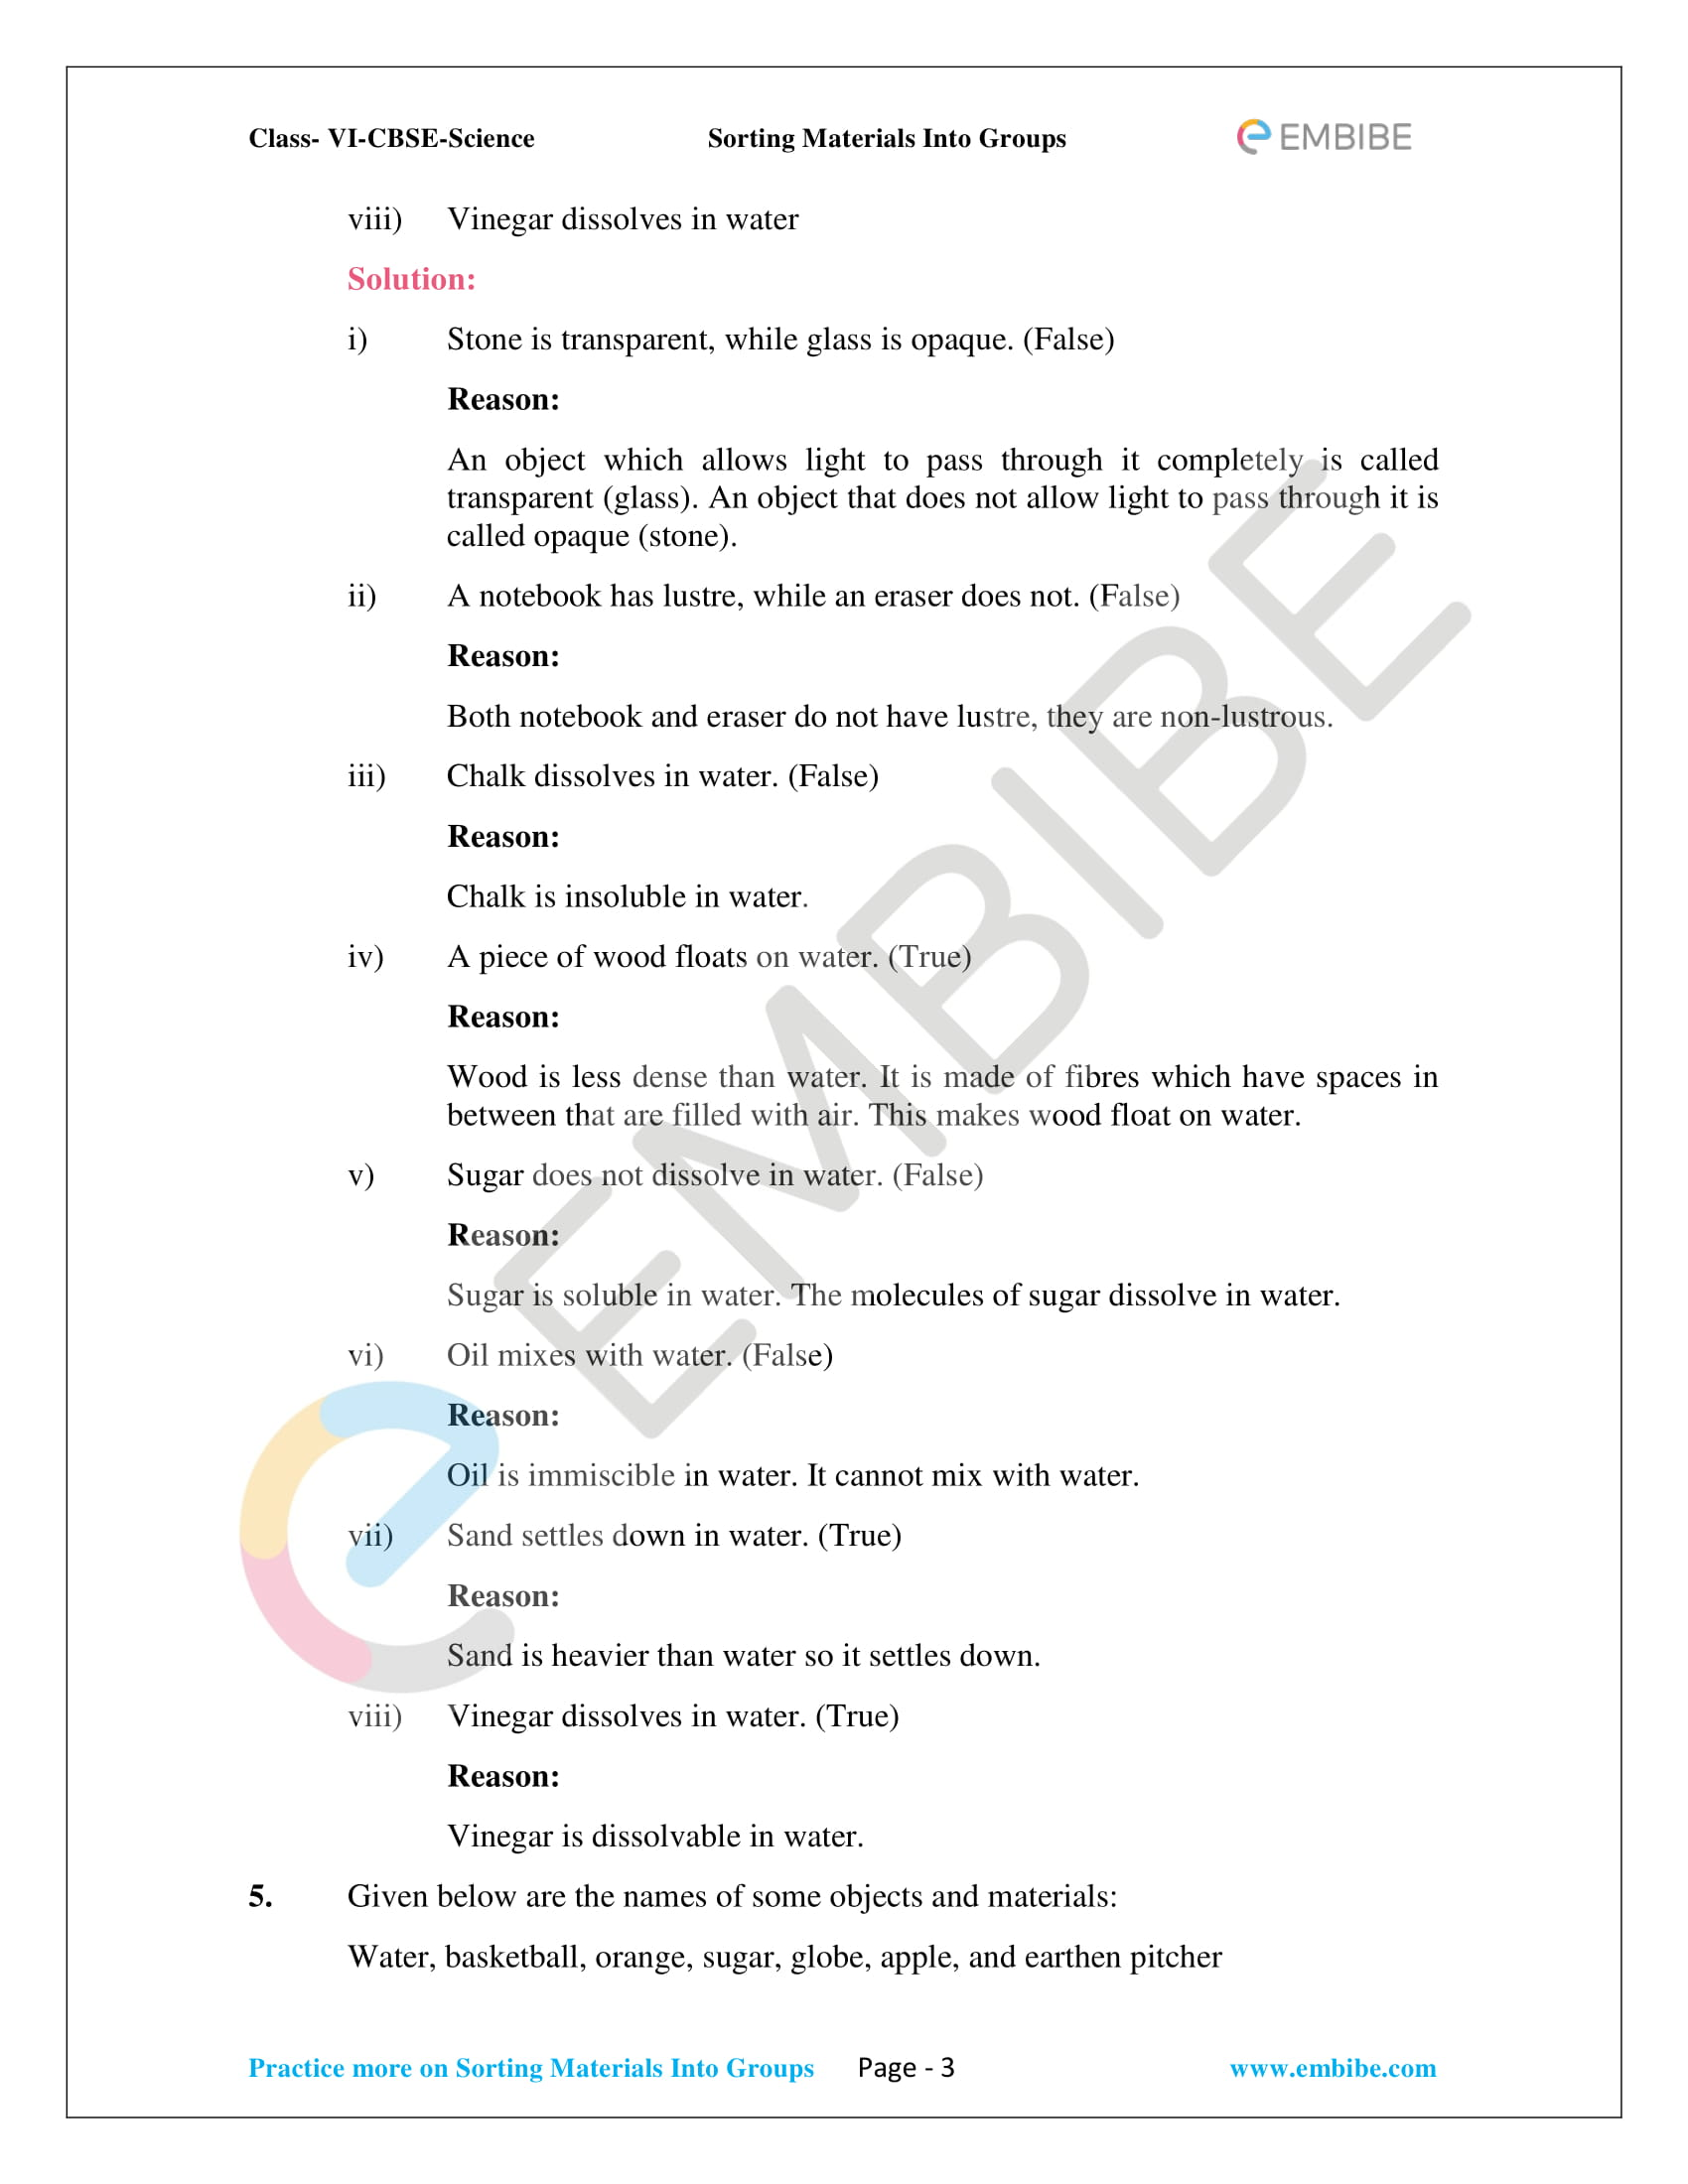 NCERT Solutions For Class 6 Science Chapter 4 - Sorting Materials Into Groups PDF - 3